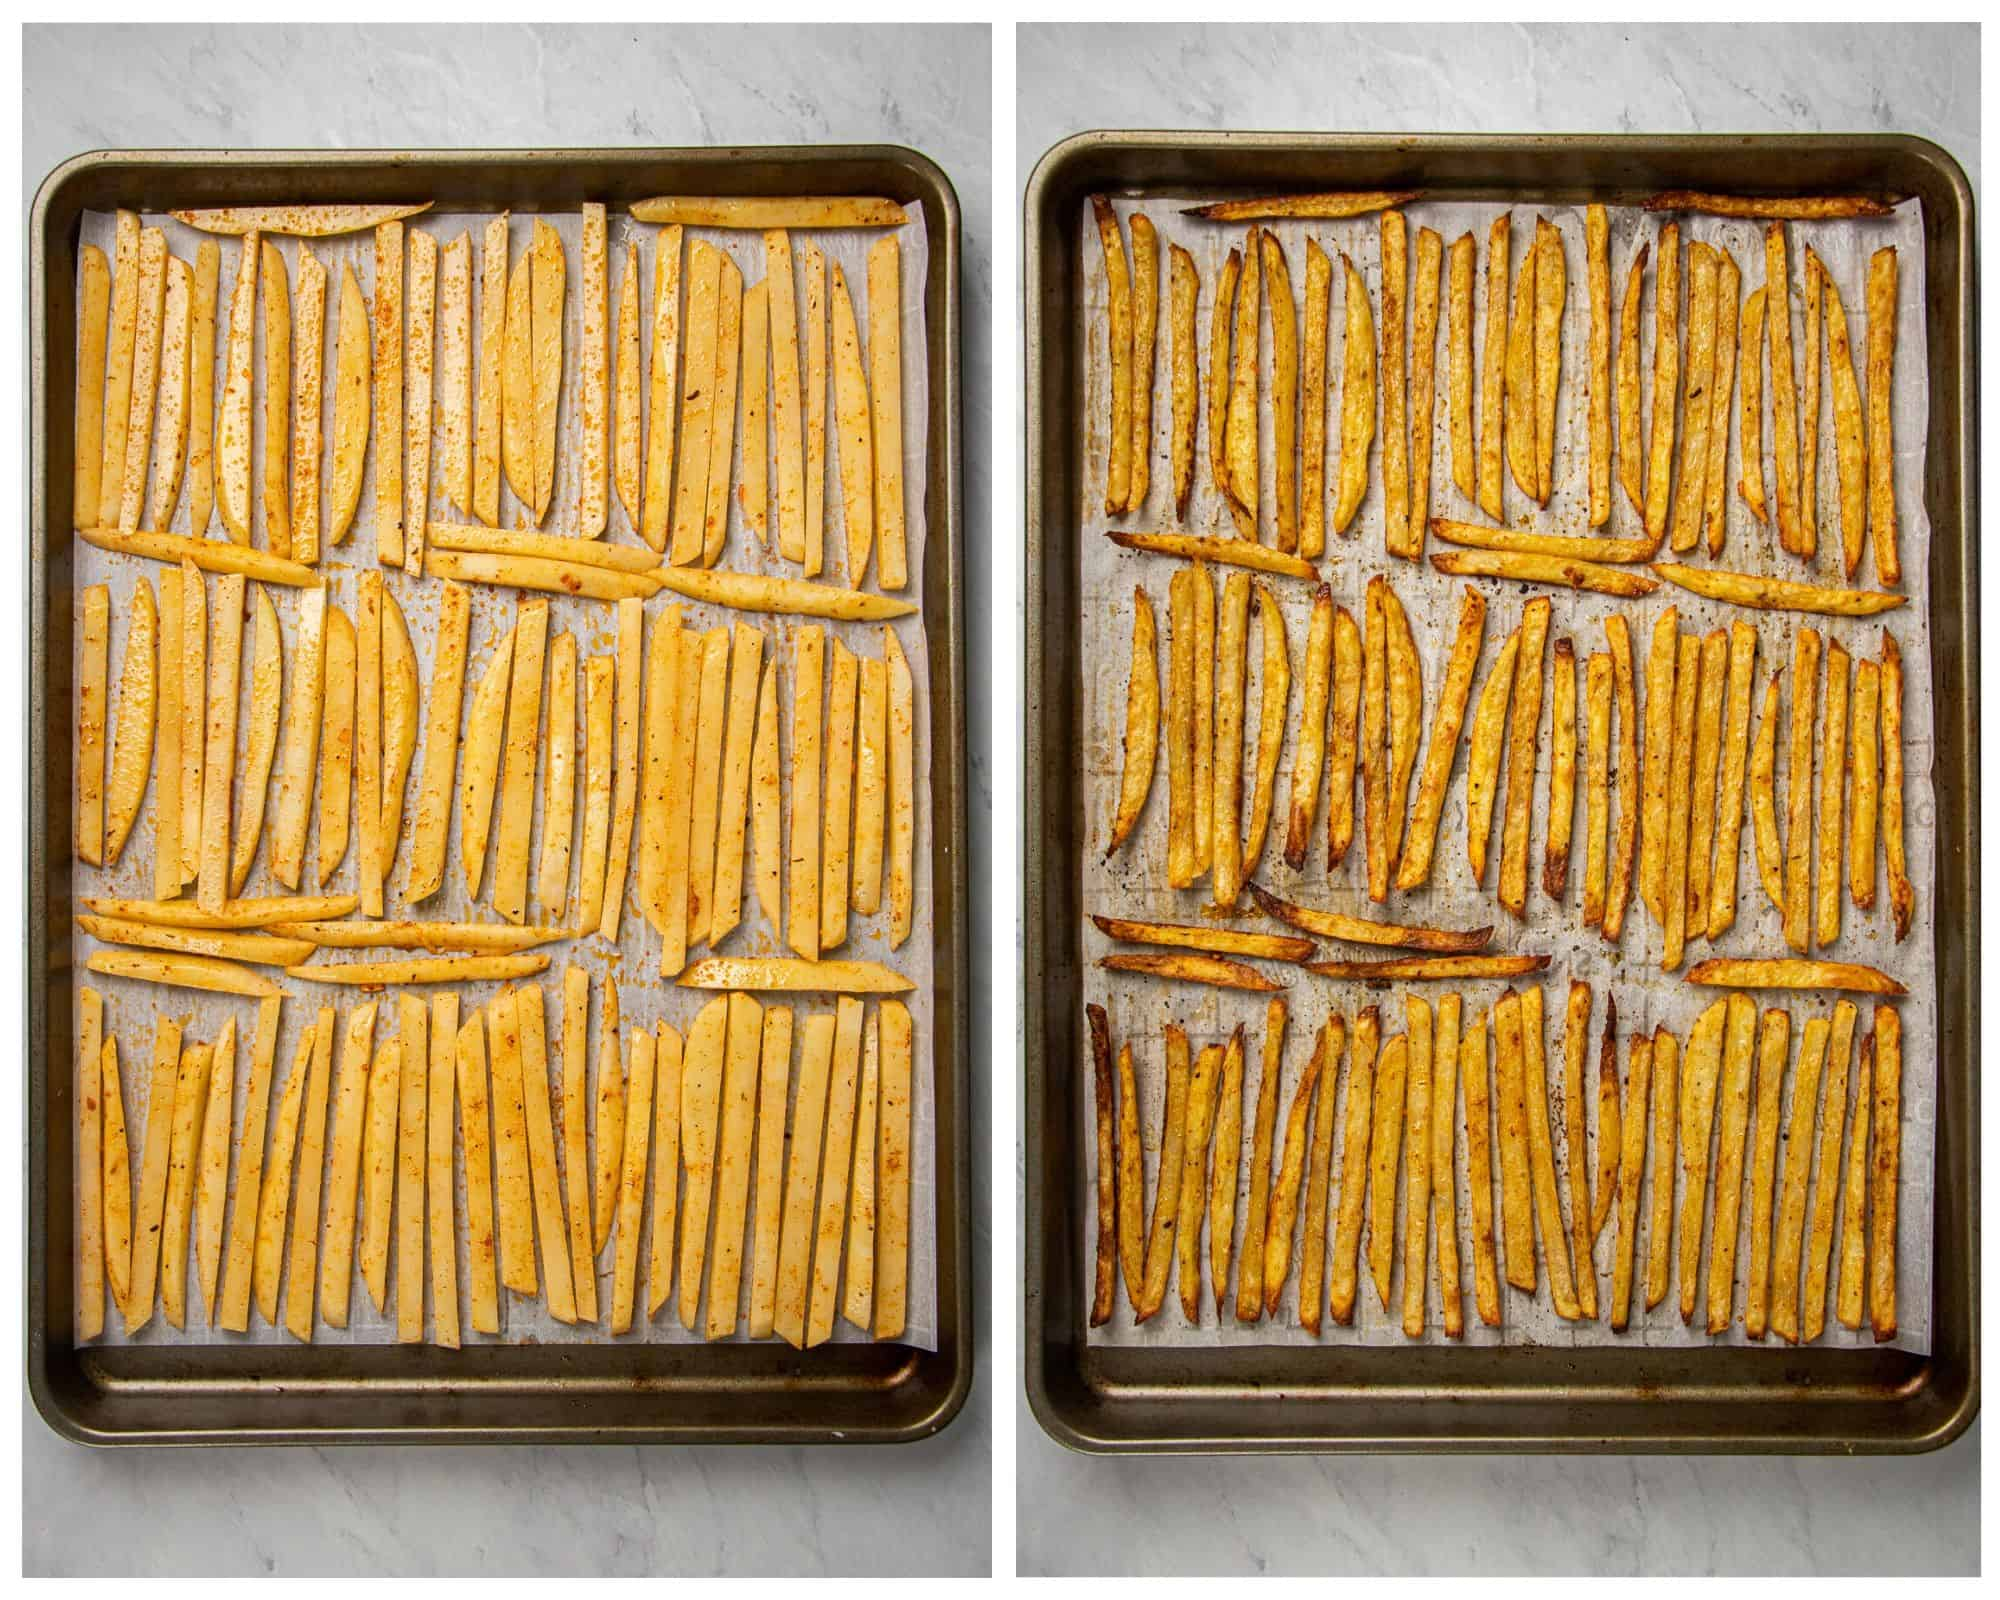 Homemade fries on a baking sheet before and after baking.